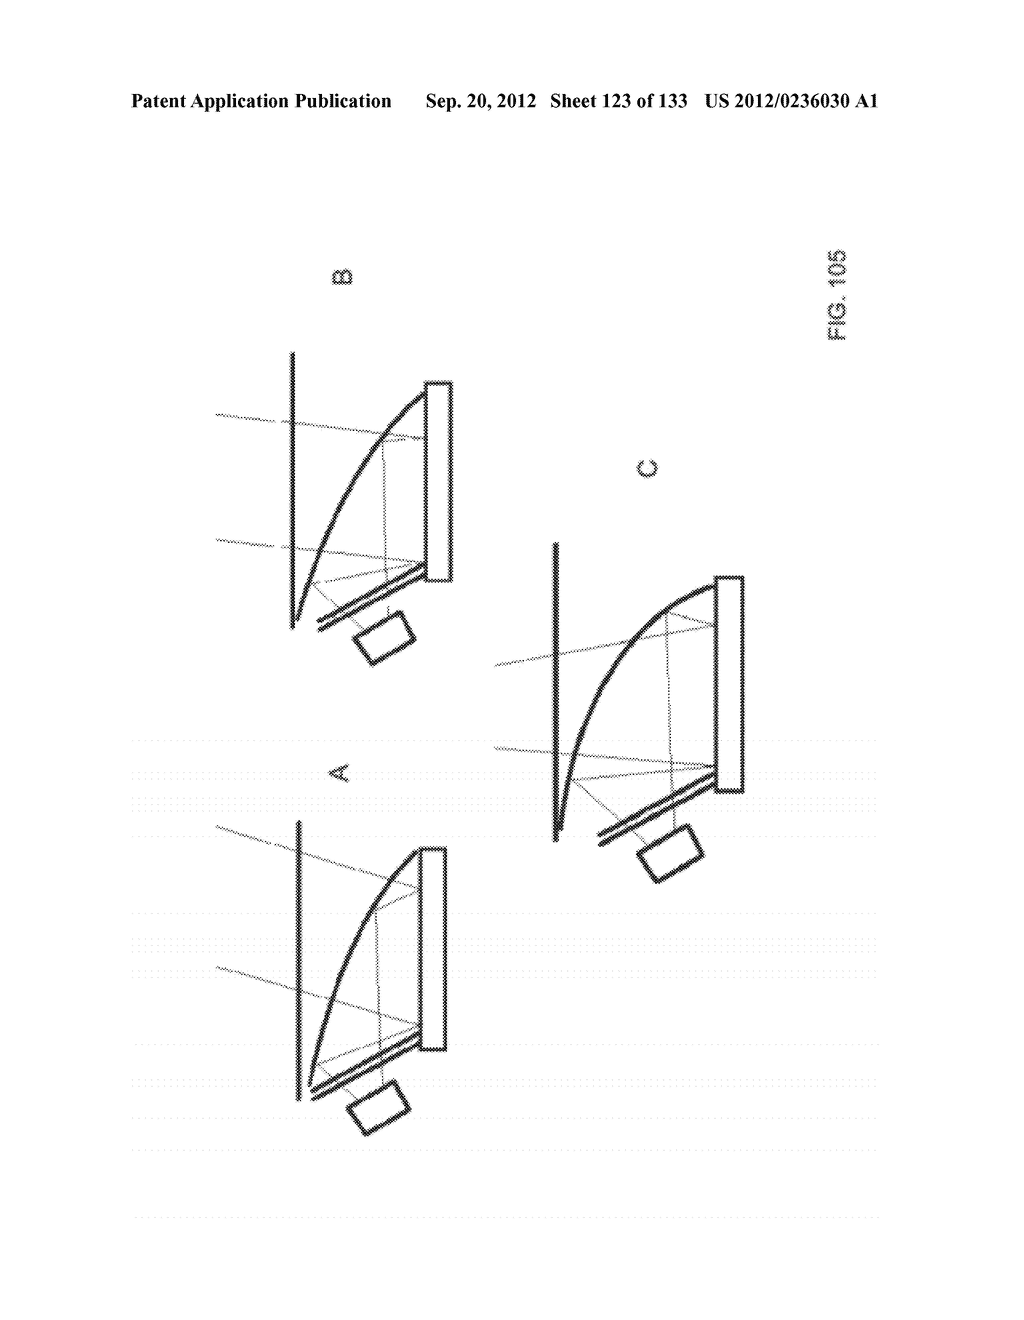 SEE-THROUGH NEAR-EYE DISPLAY GLASSES INCLUDING A MODULAR IMAGE SOURCE - diagram, schematic, and image 124